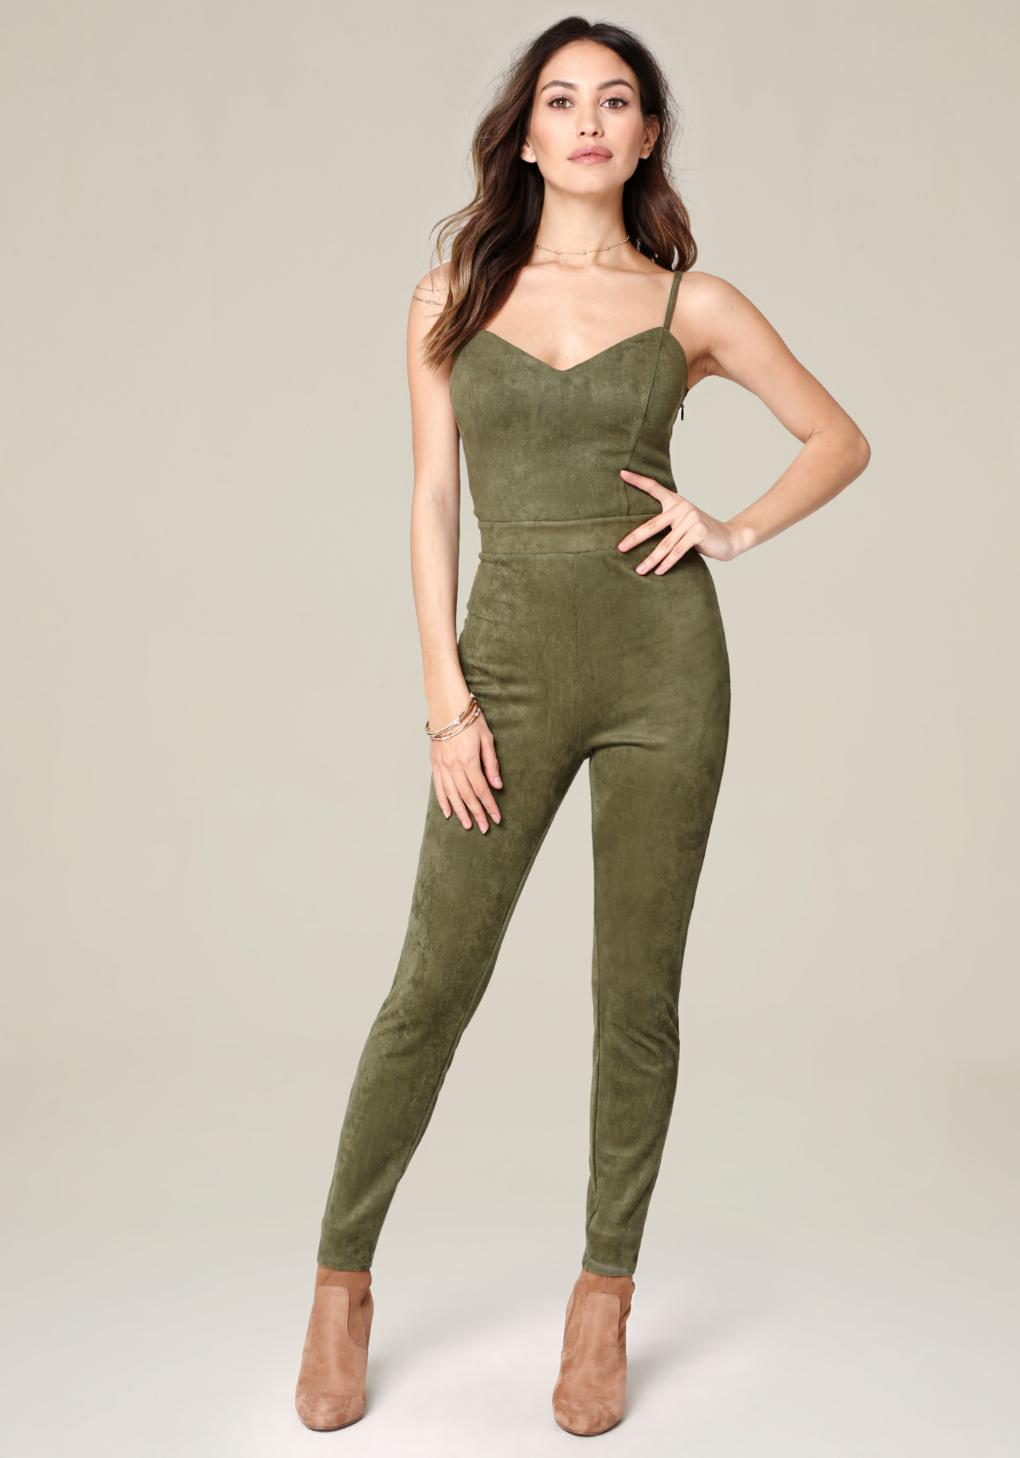 2dcf95dc5f46 Lyst - Bebe Camryn Strappy Jumpsuit in Green